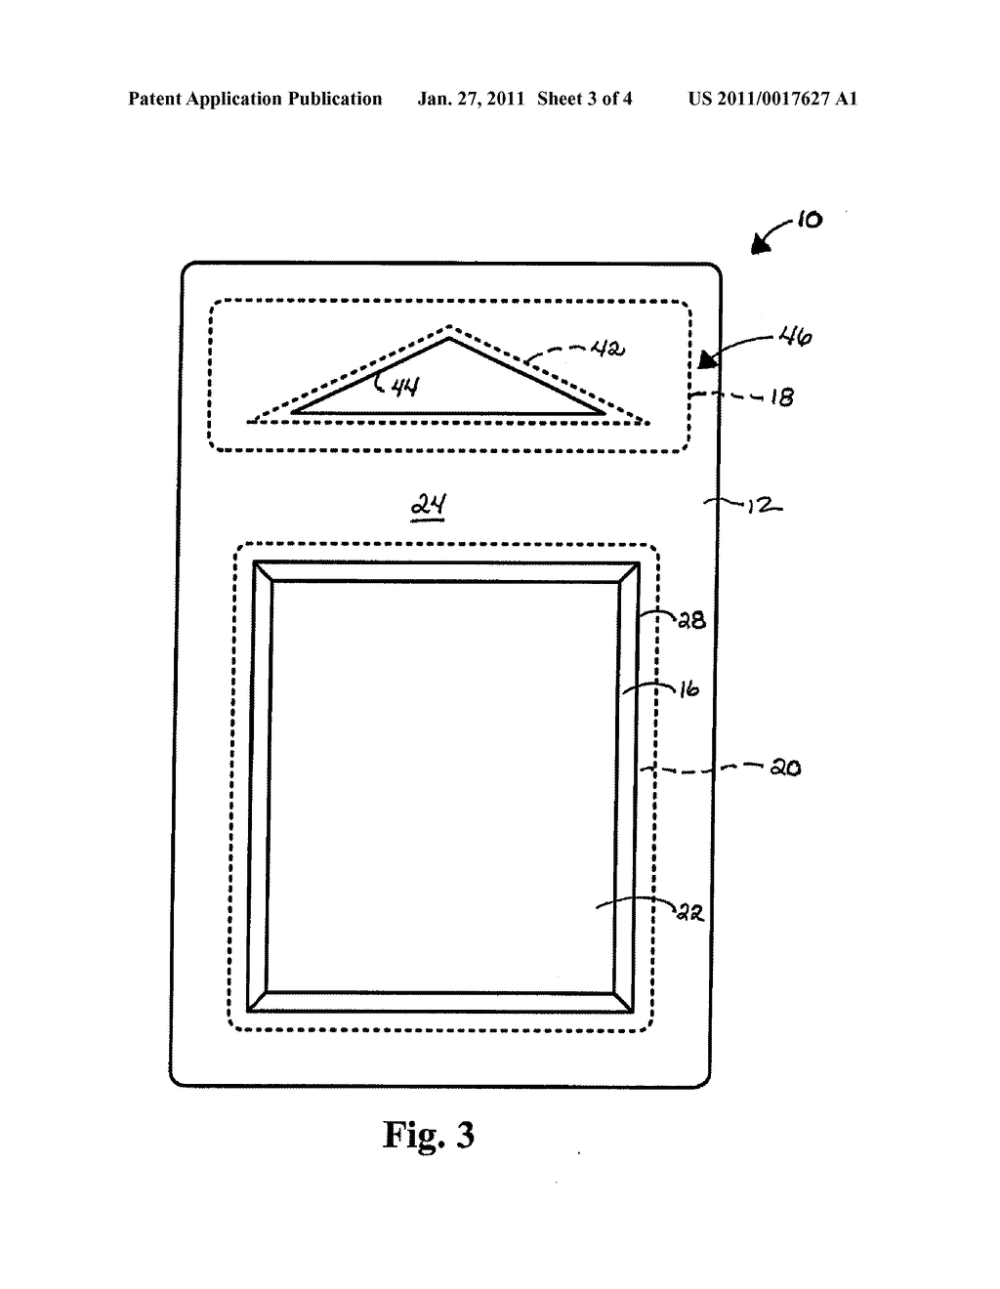 medium resolution of hang tab reinforcement for blister card packaging structures diagram schematic and image 04